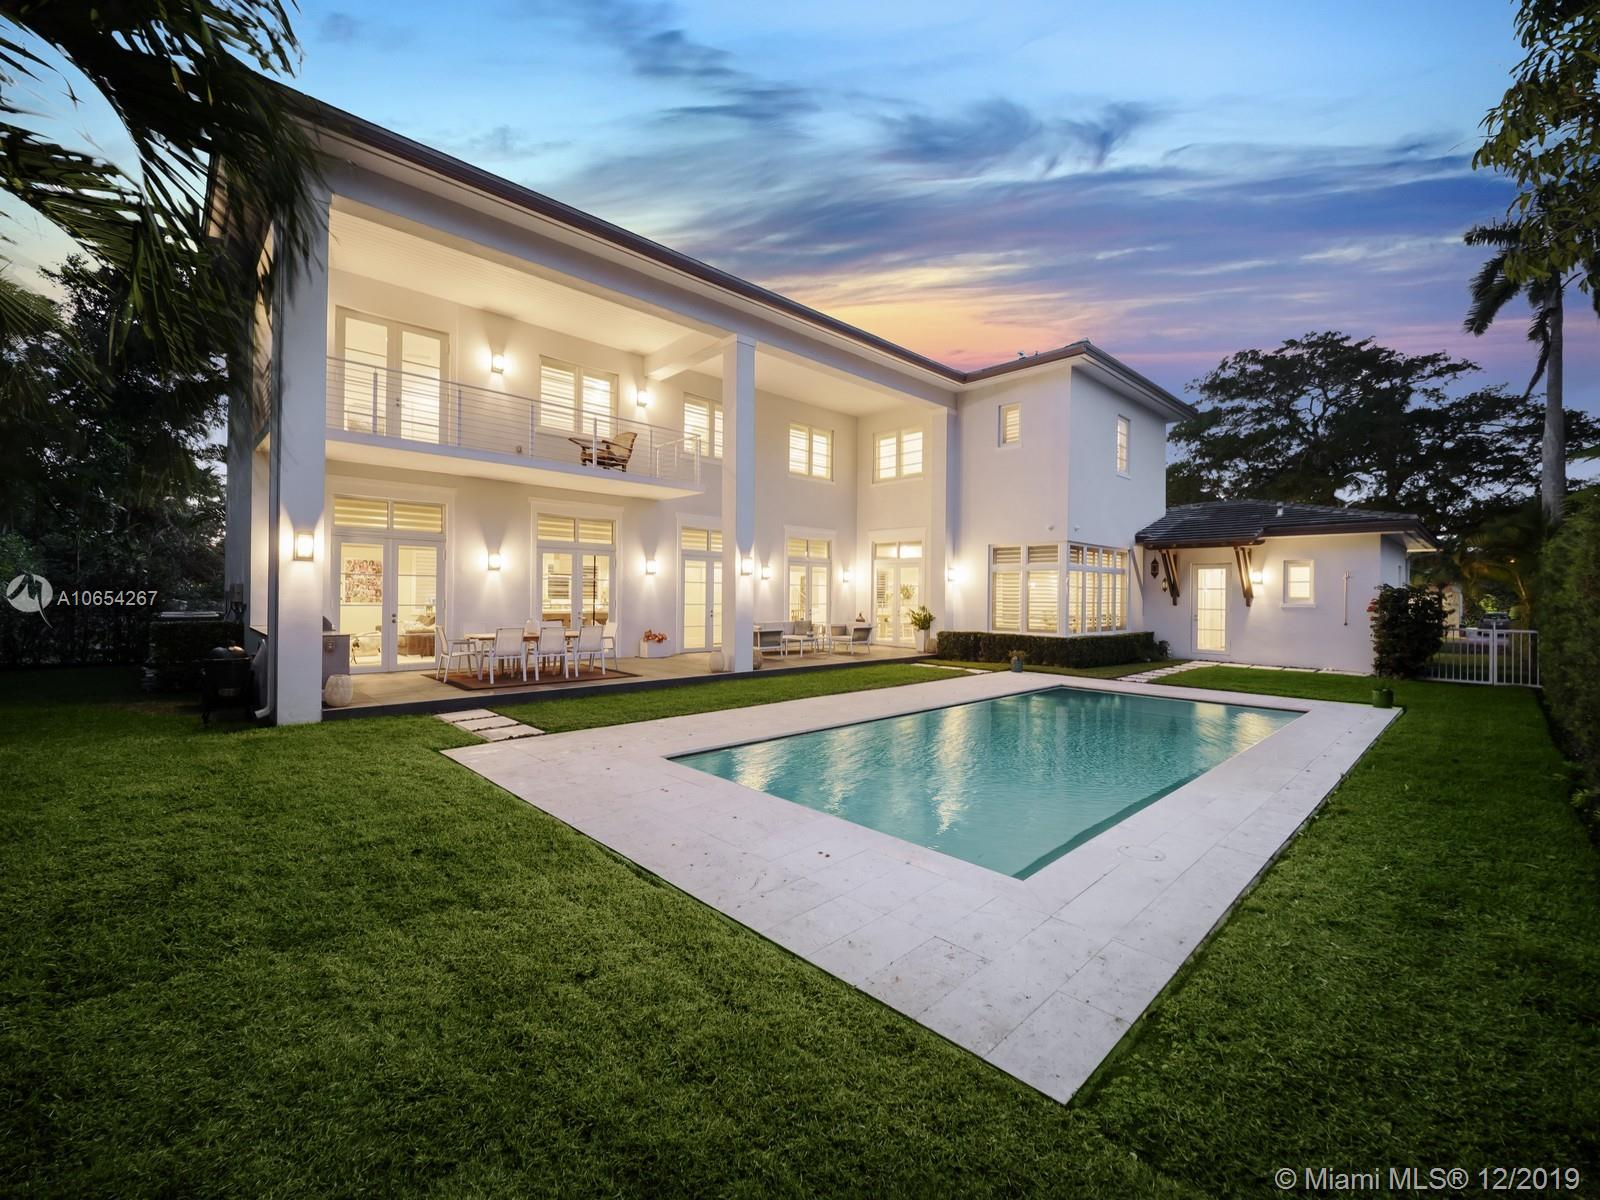 432 Madeira Ave, Coral Gables FL 33134